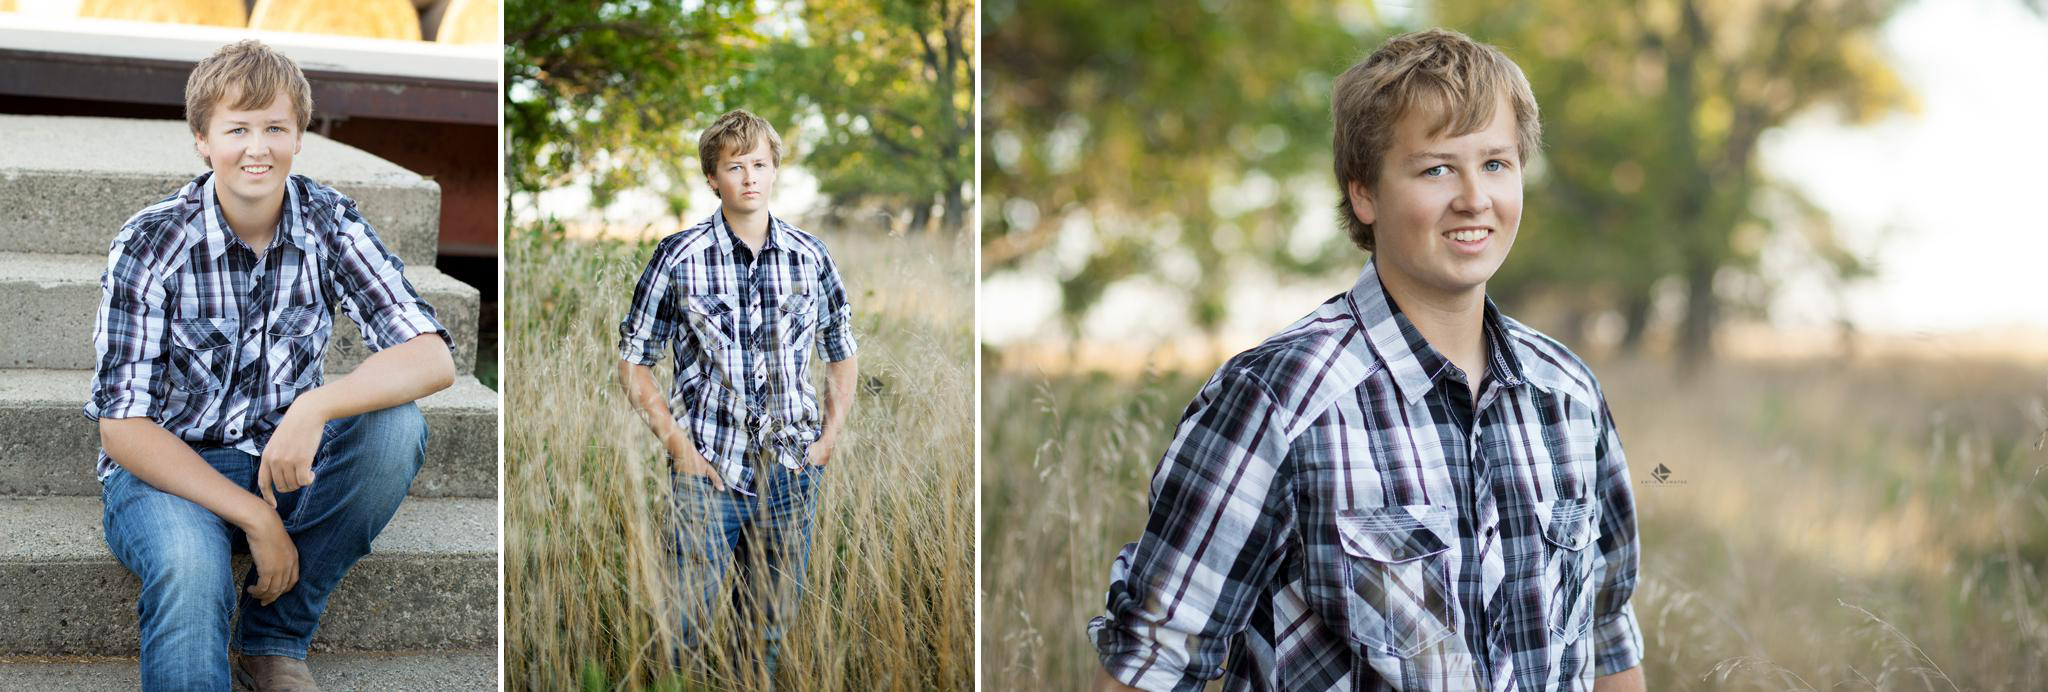 blonde senior boy in a black and white plaid shirt standing in a field of tall grass and sitting on cement stairs